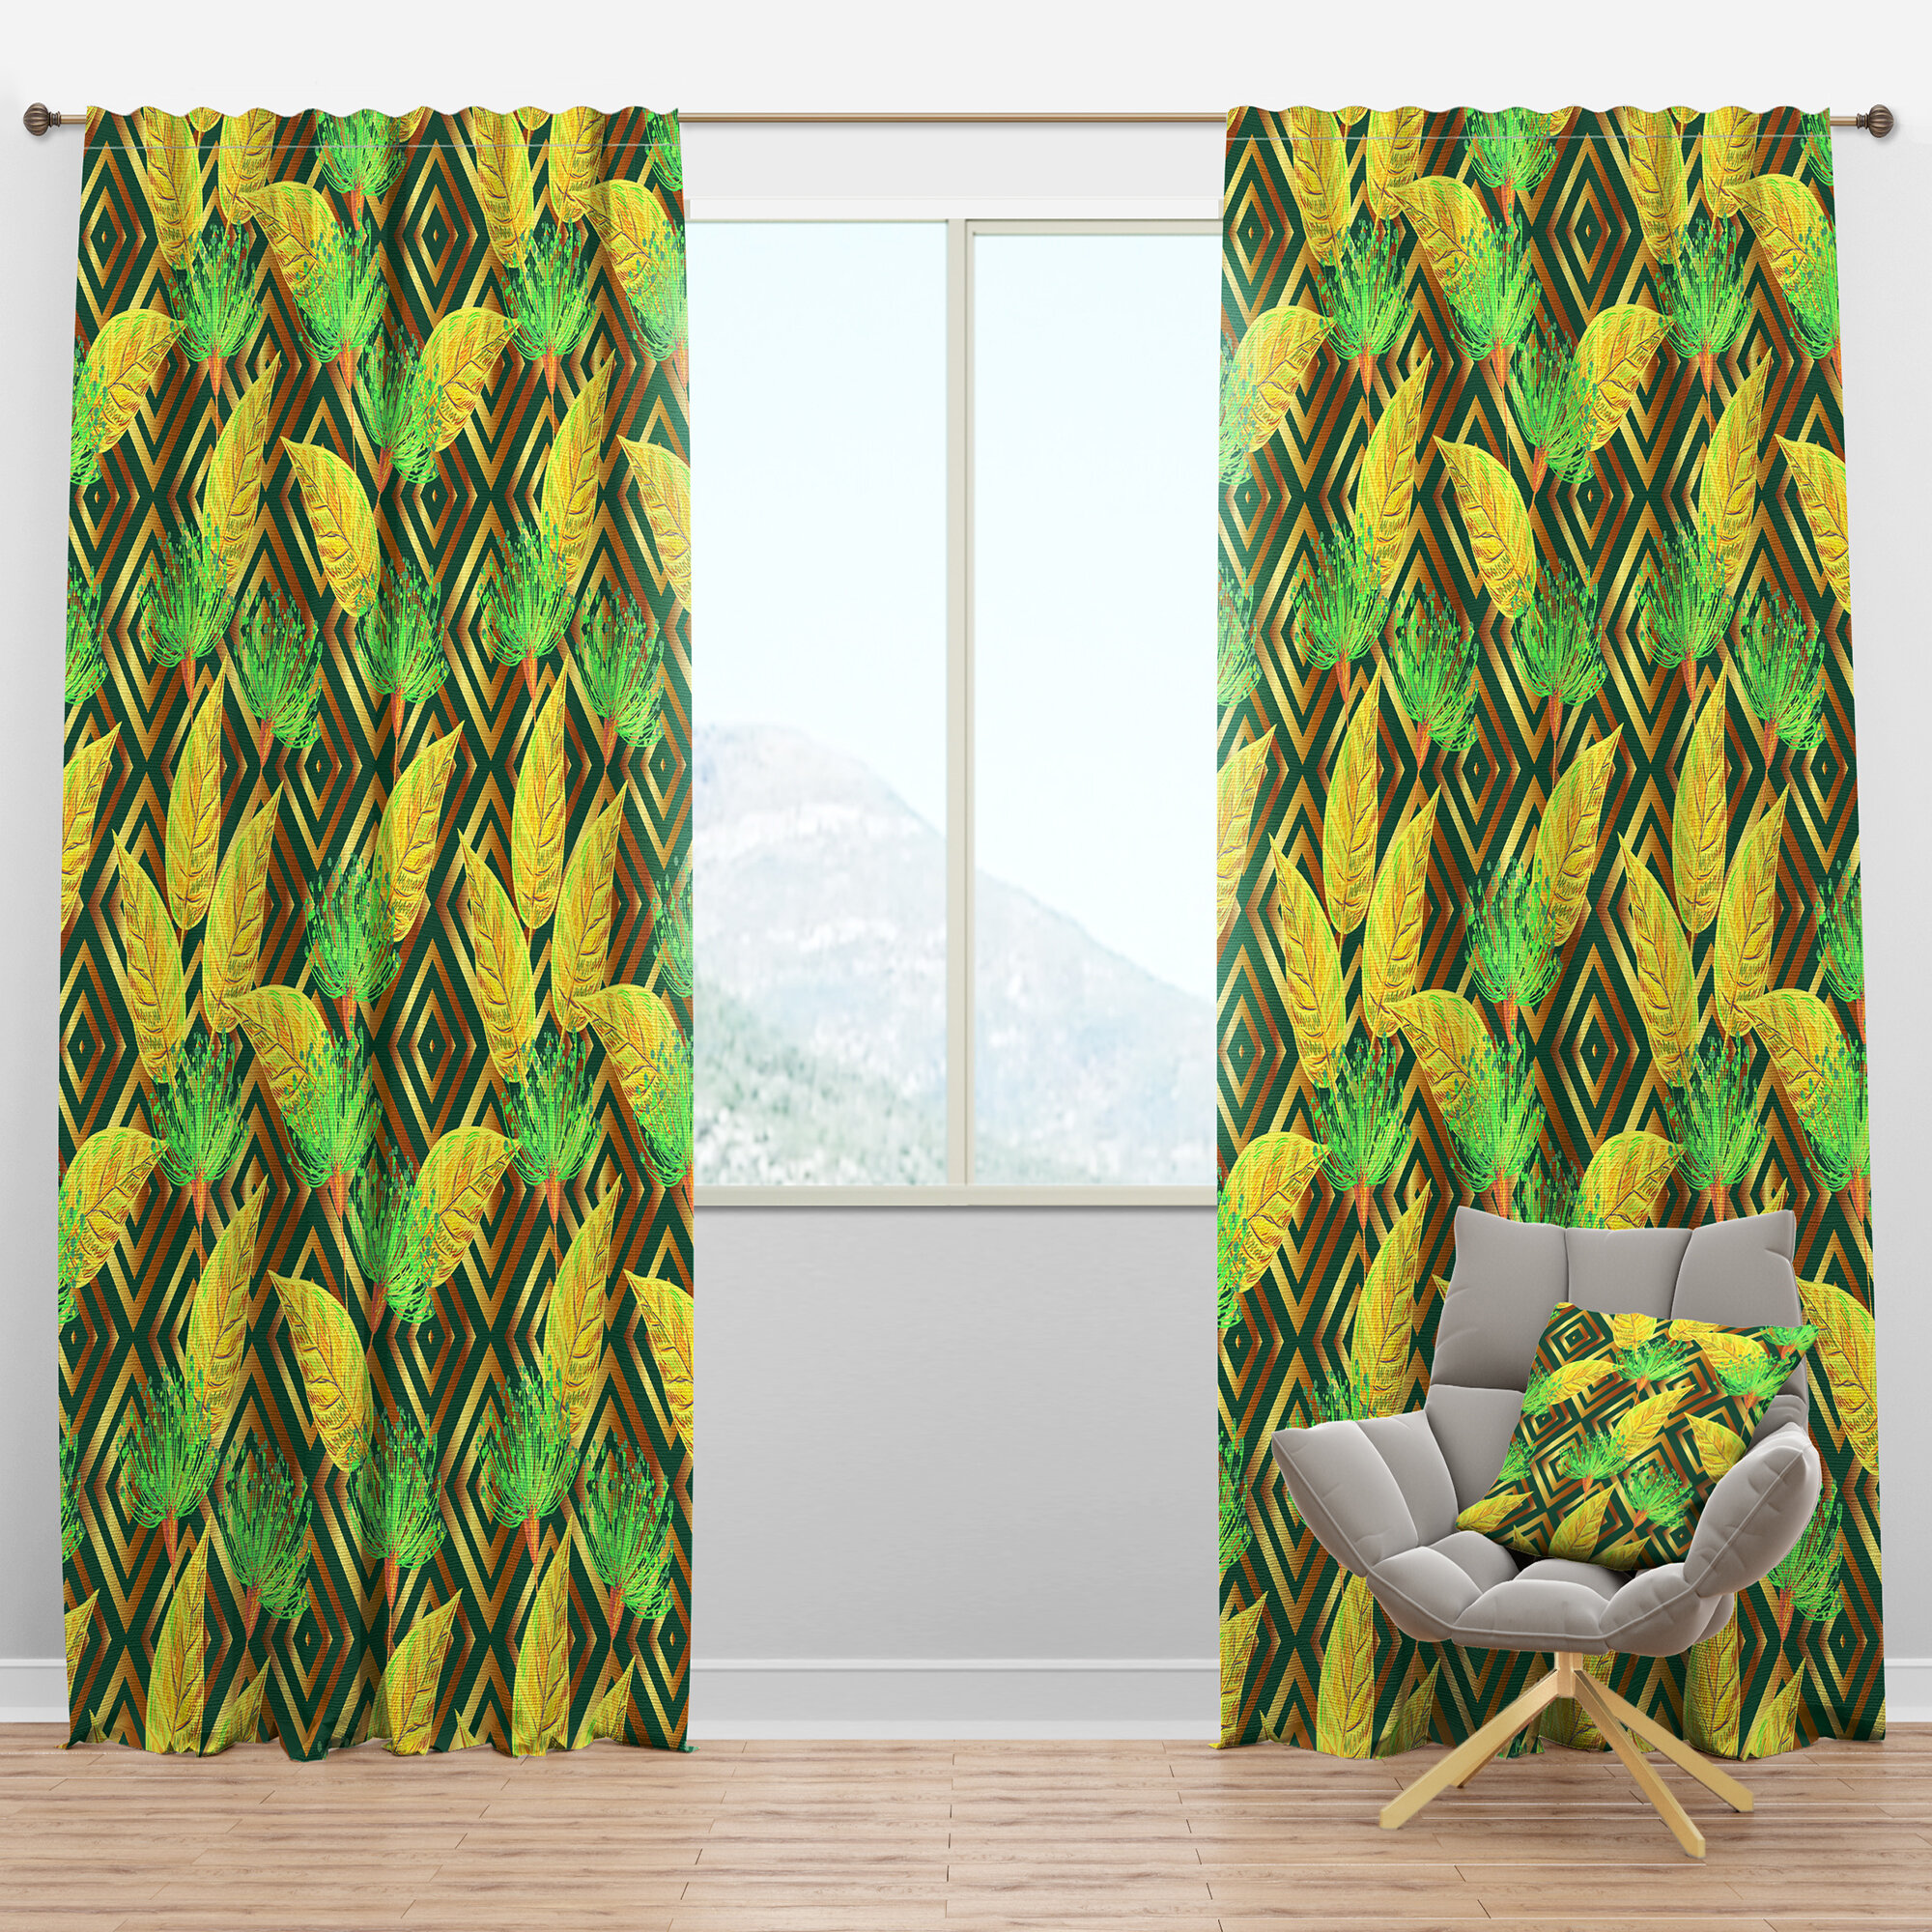 Designart Mid Century Tropical Luxury Pattern Ii Floral Semi Sheer Thermal Rod Pocket Single Curtain Panel Wayfair